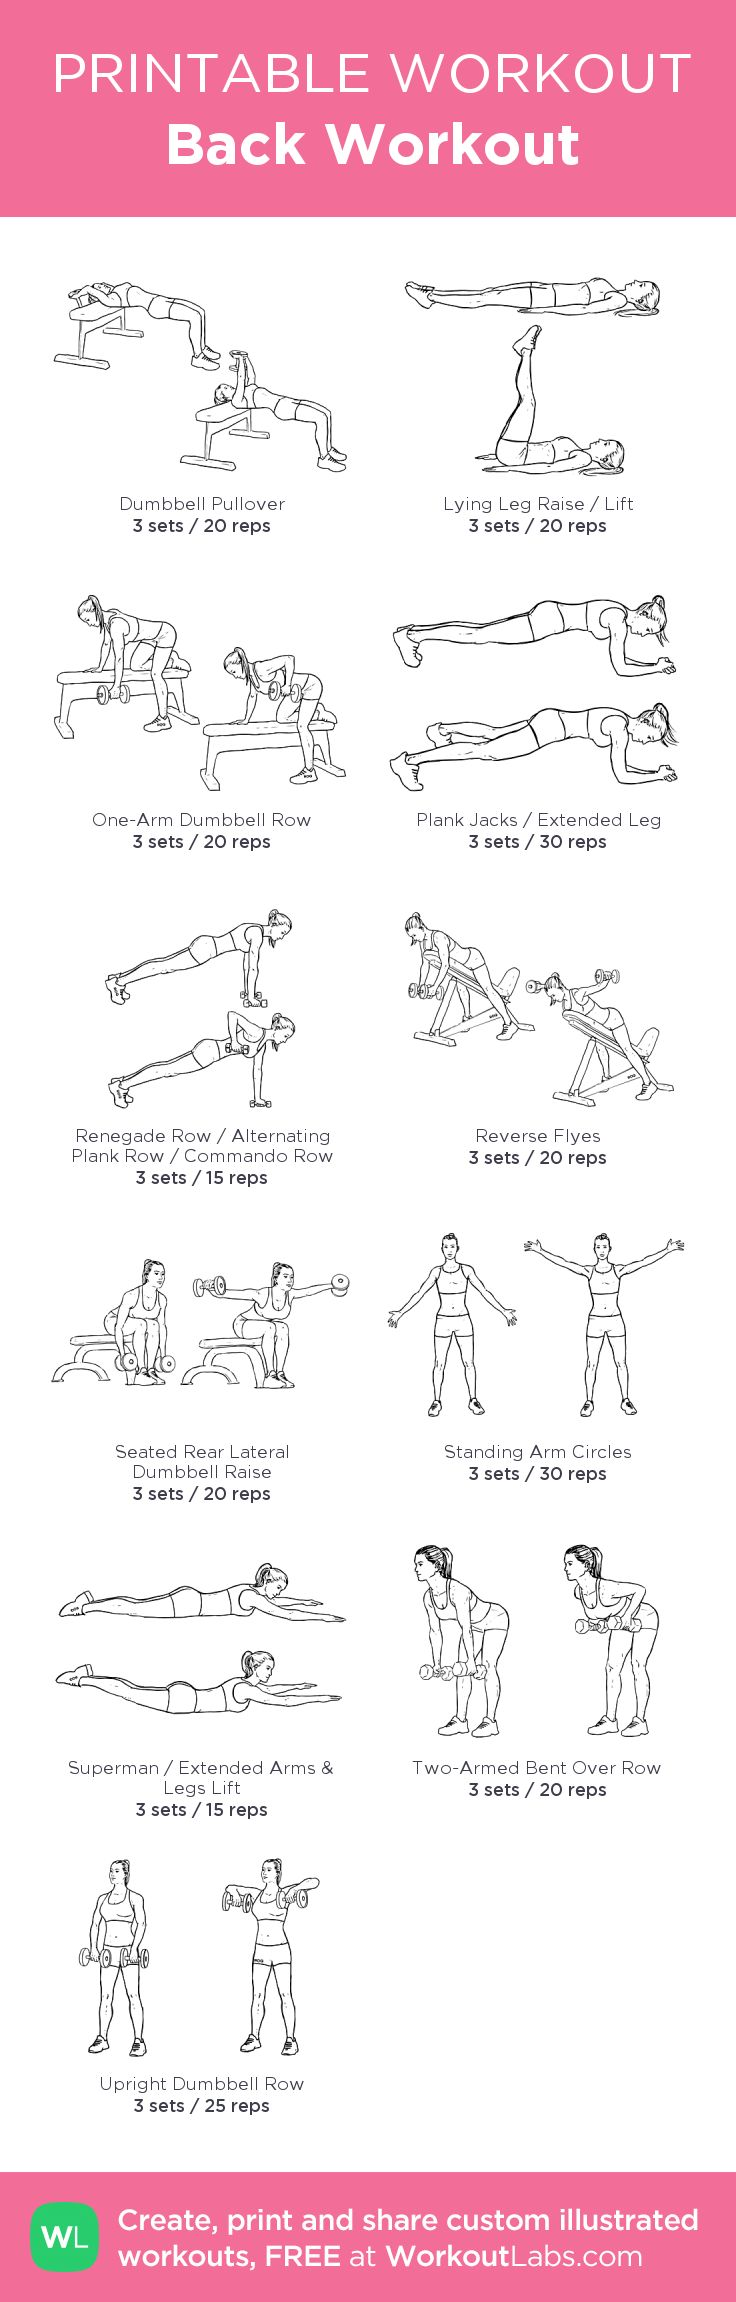 Back Workout:my visual workout created at WorkoutLabs.com • Click through to customize and download as a FREE PDF! #customworkout